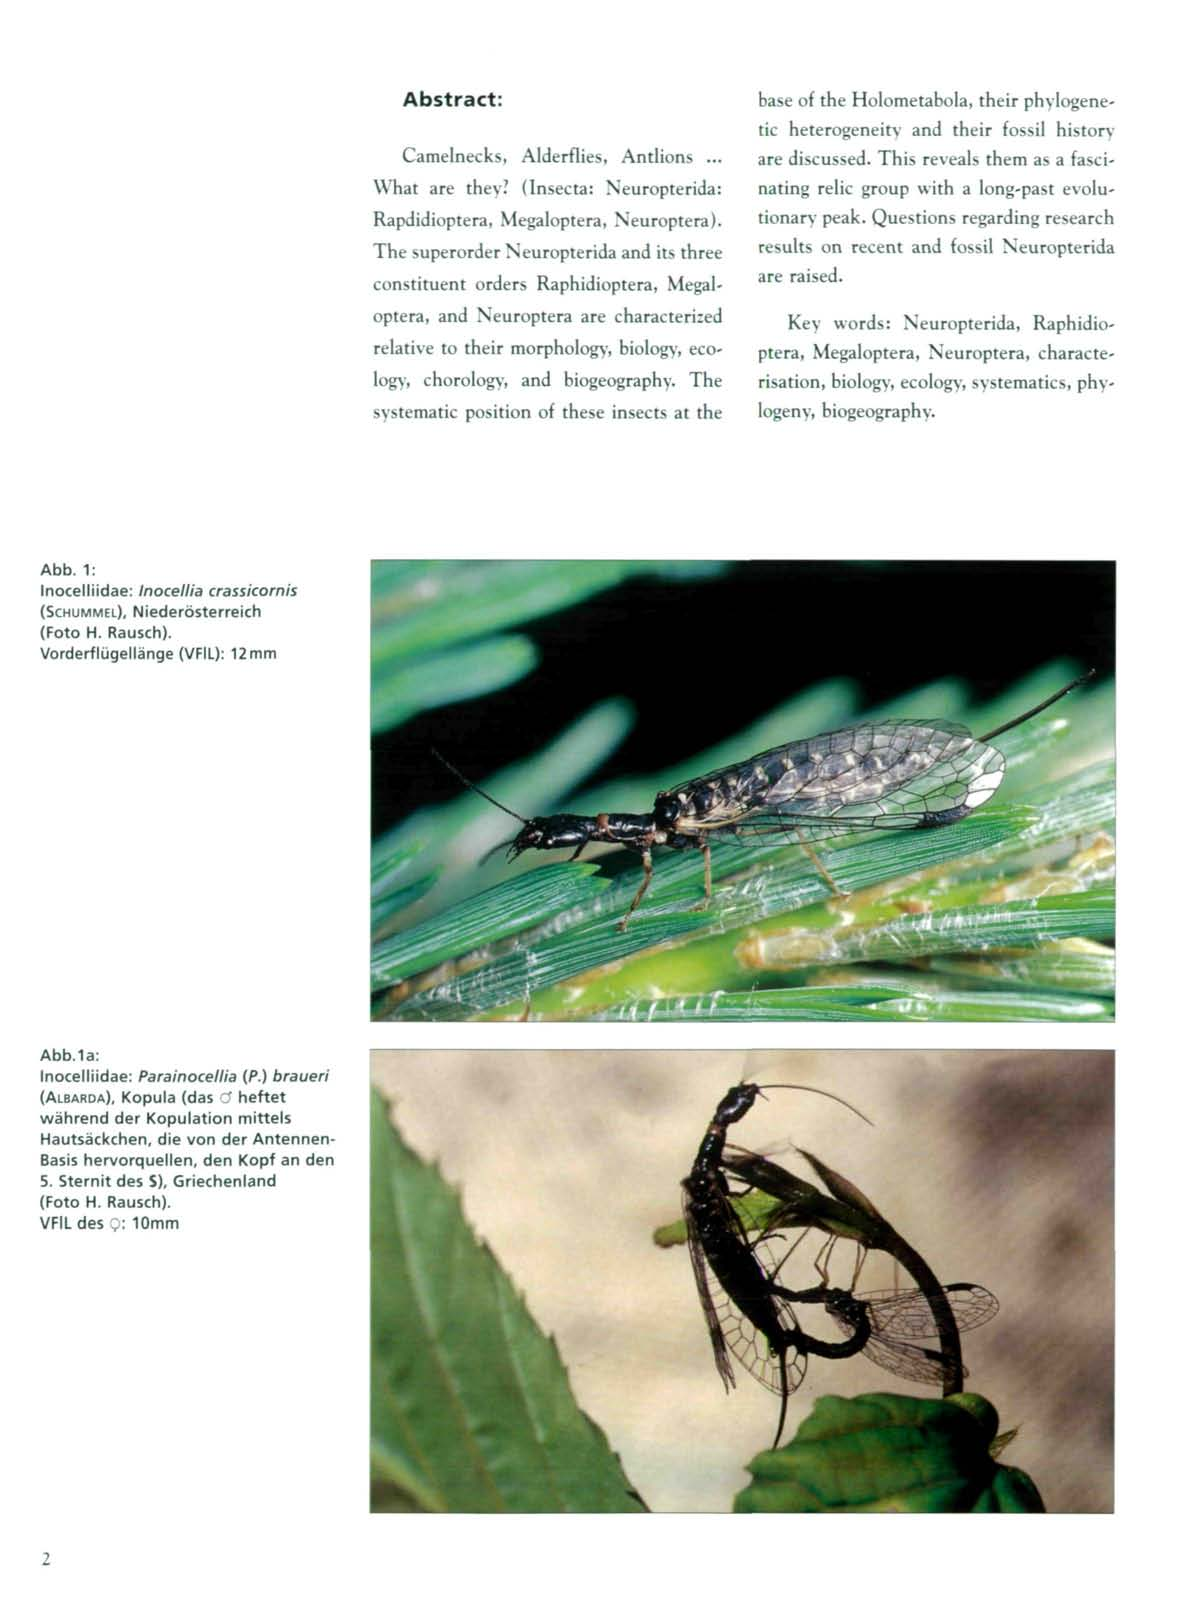 Abstract: Cameinecks, Alderflies, Antlions... What are they? (Insecta: Neuropterida: Rapdidioptera, Megaloptera, Neuroptera).